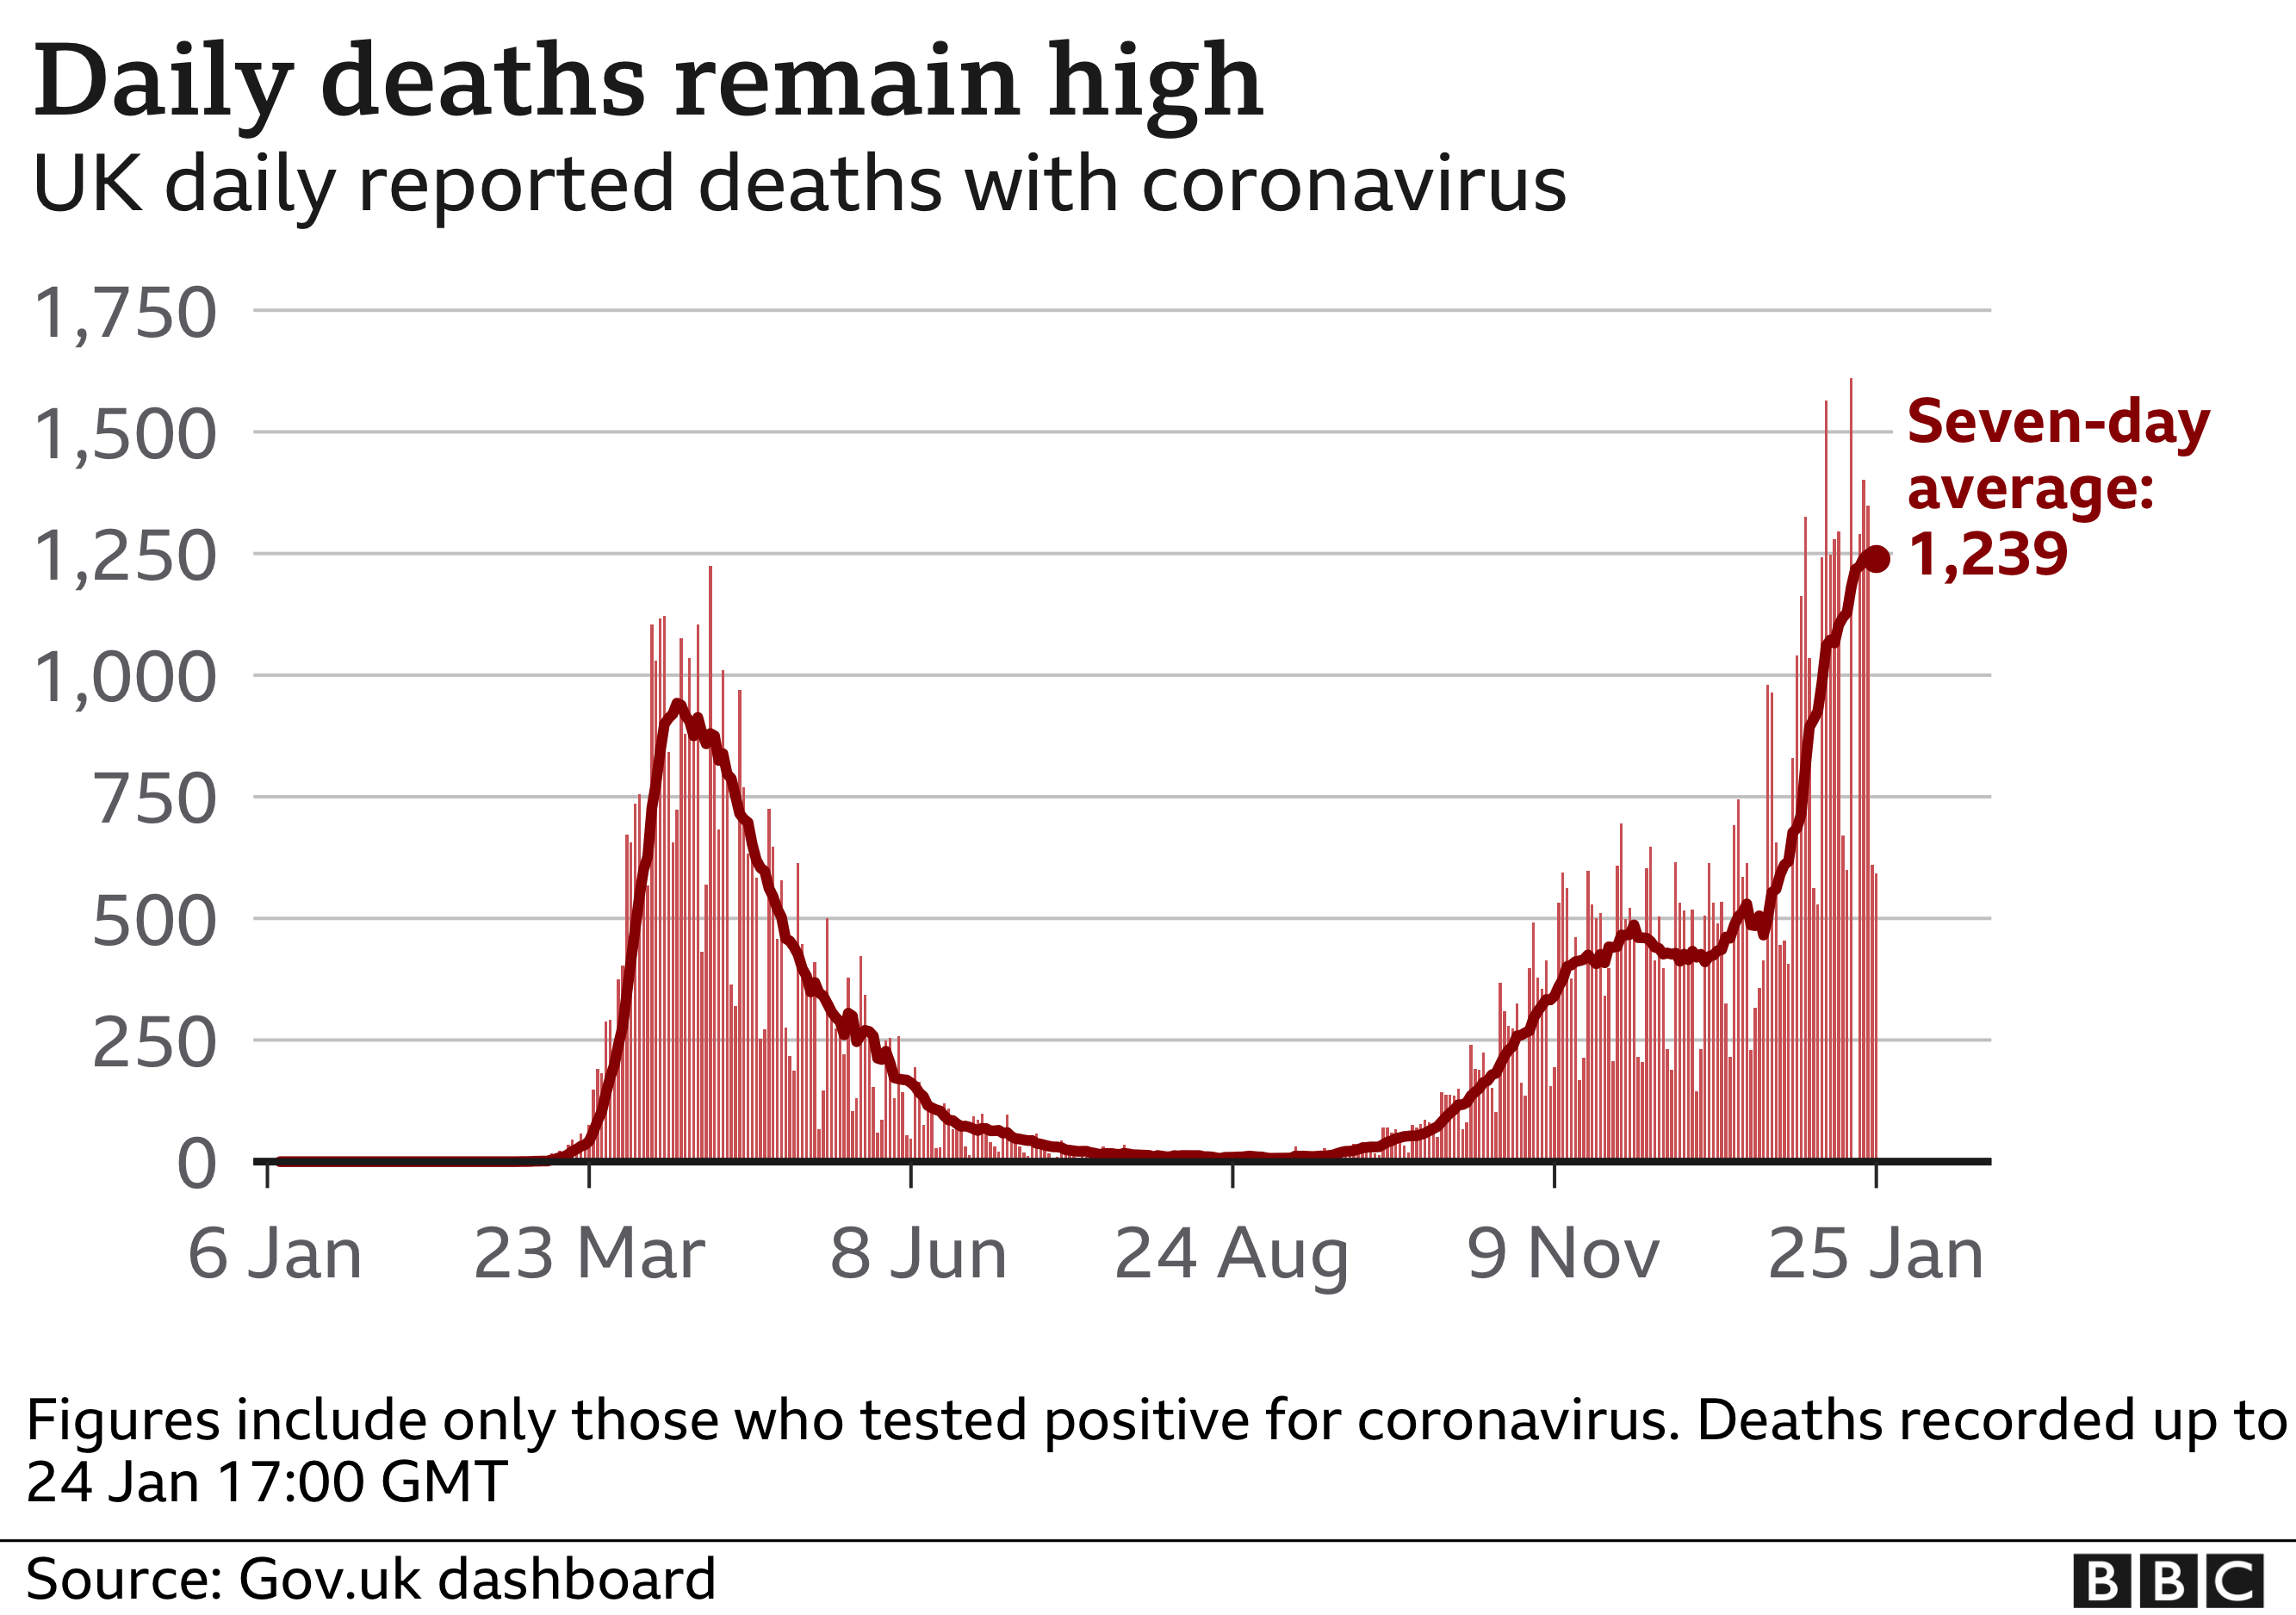 Chart showing daily deaths and seven-day average